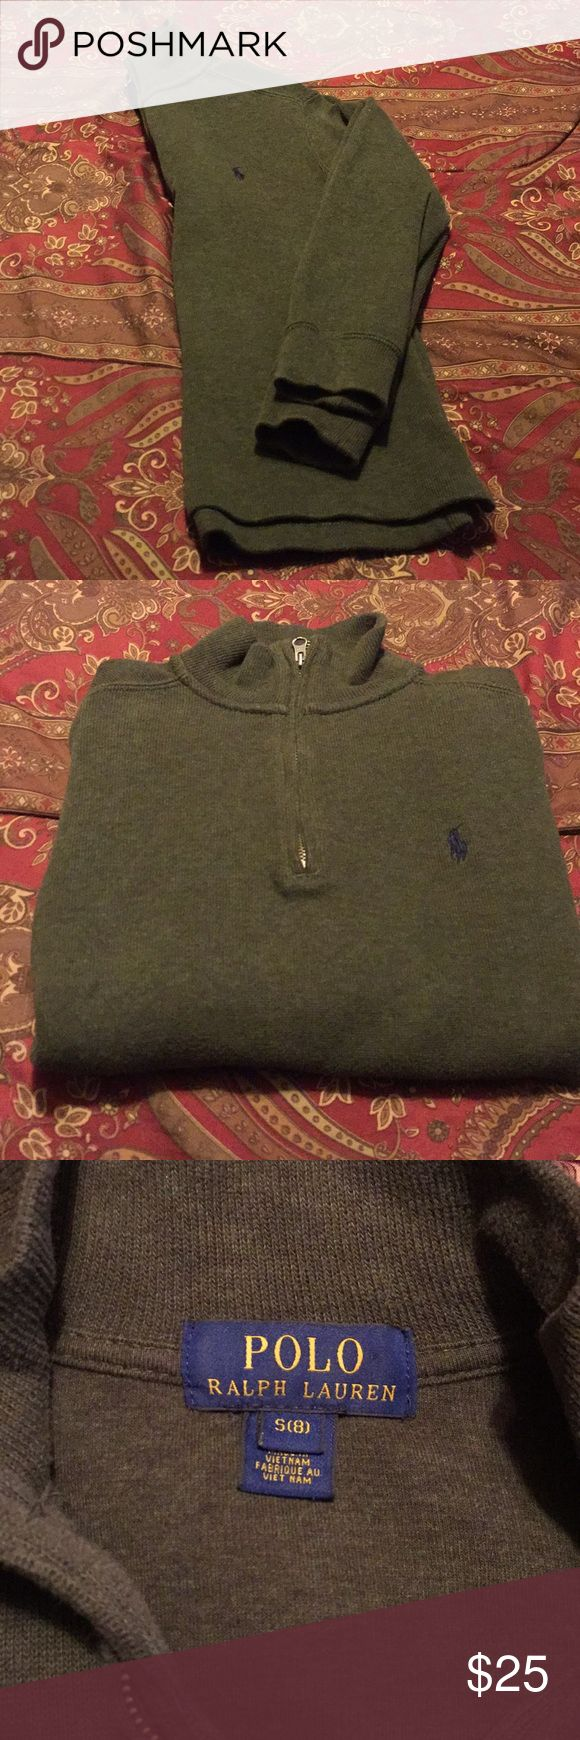 Polo pullover Boys Olive green Polo Ralph Lauren pullover with zip & blue and white collared buttoned up shirt to match Polo by Ralph Lauren Shirts & Tops Sweatshirts & Hoodies